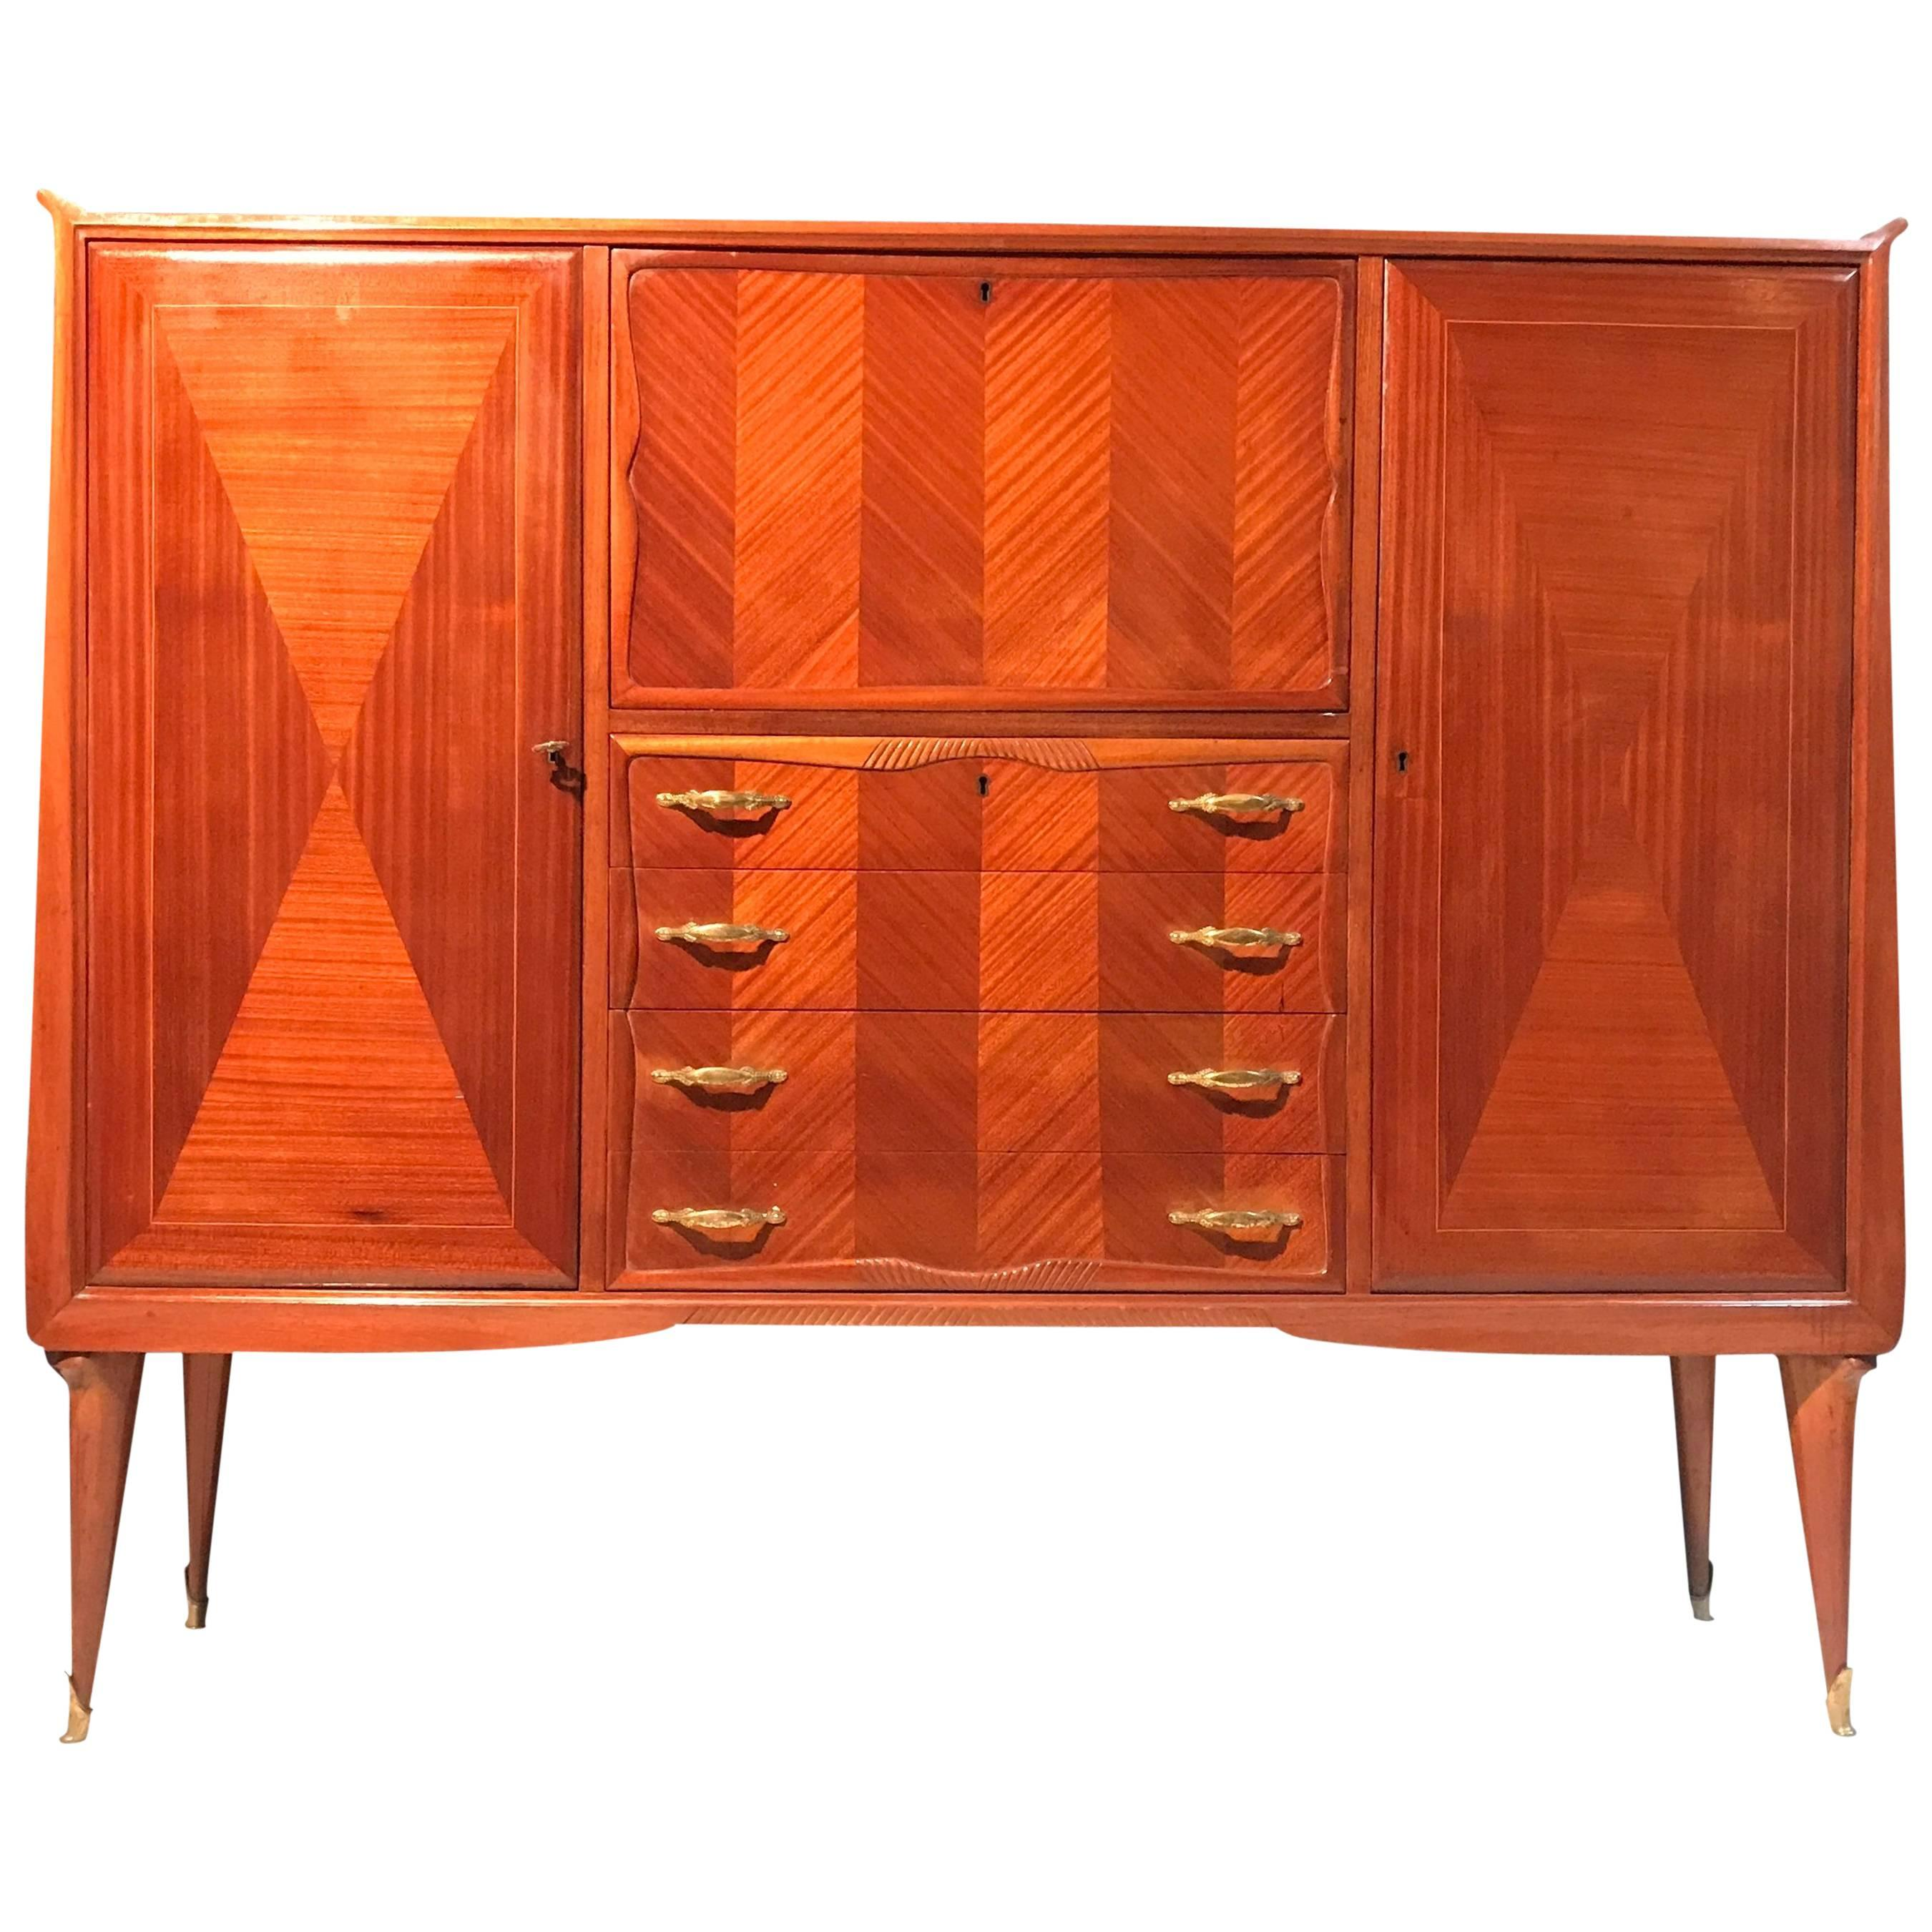 Elegant Italian Midcentury Bar Cabinet in the Style of Paolo Buffa, 1950s